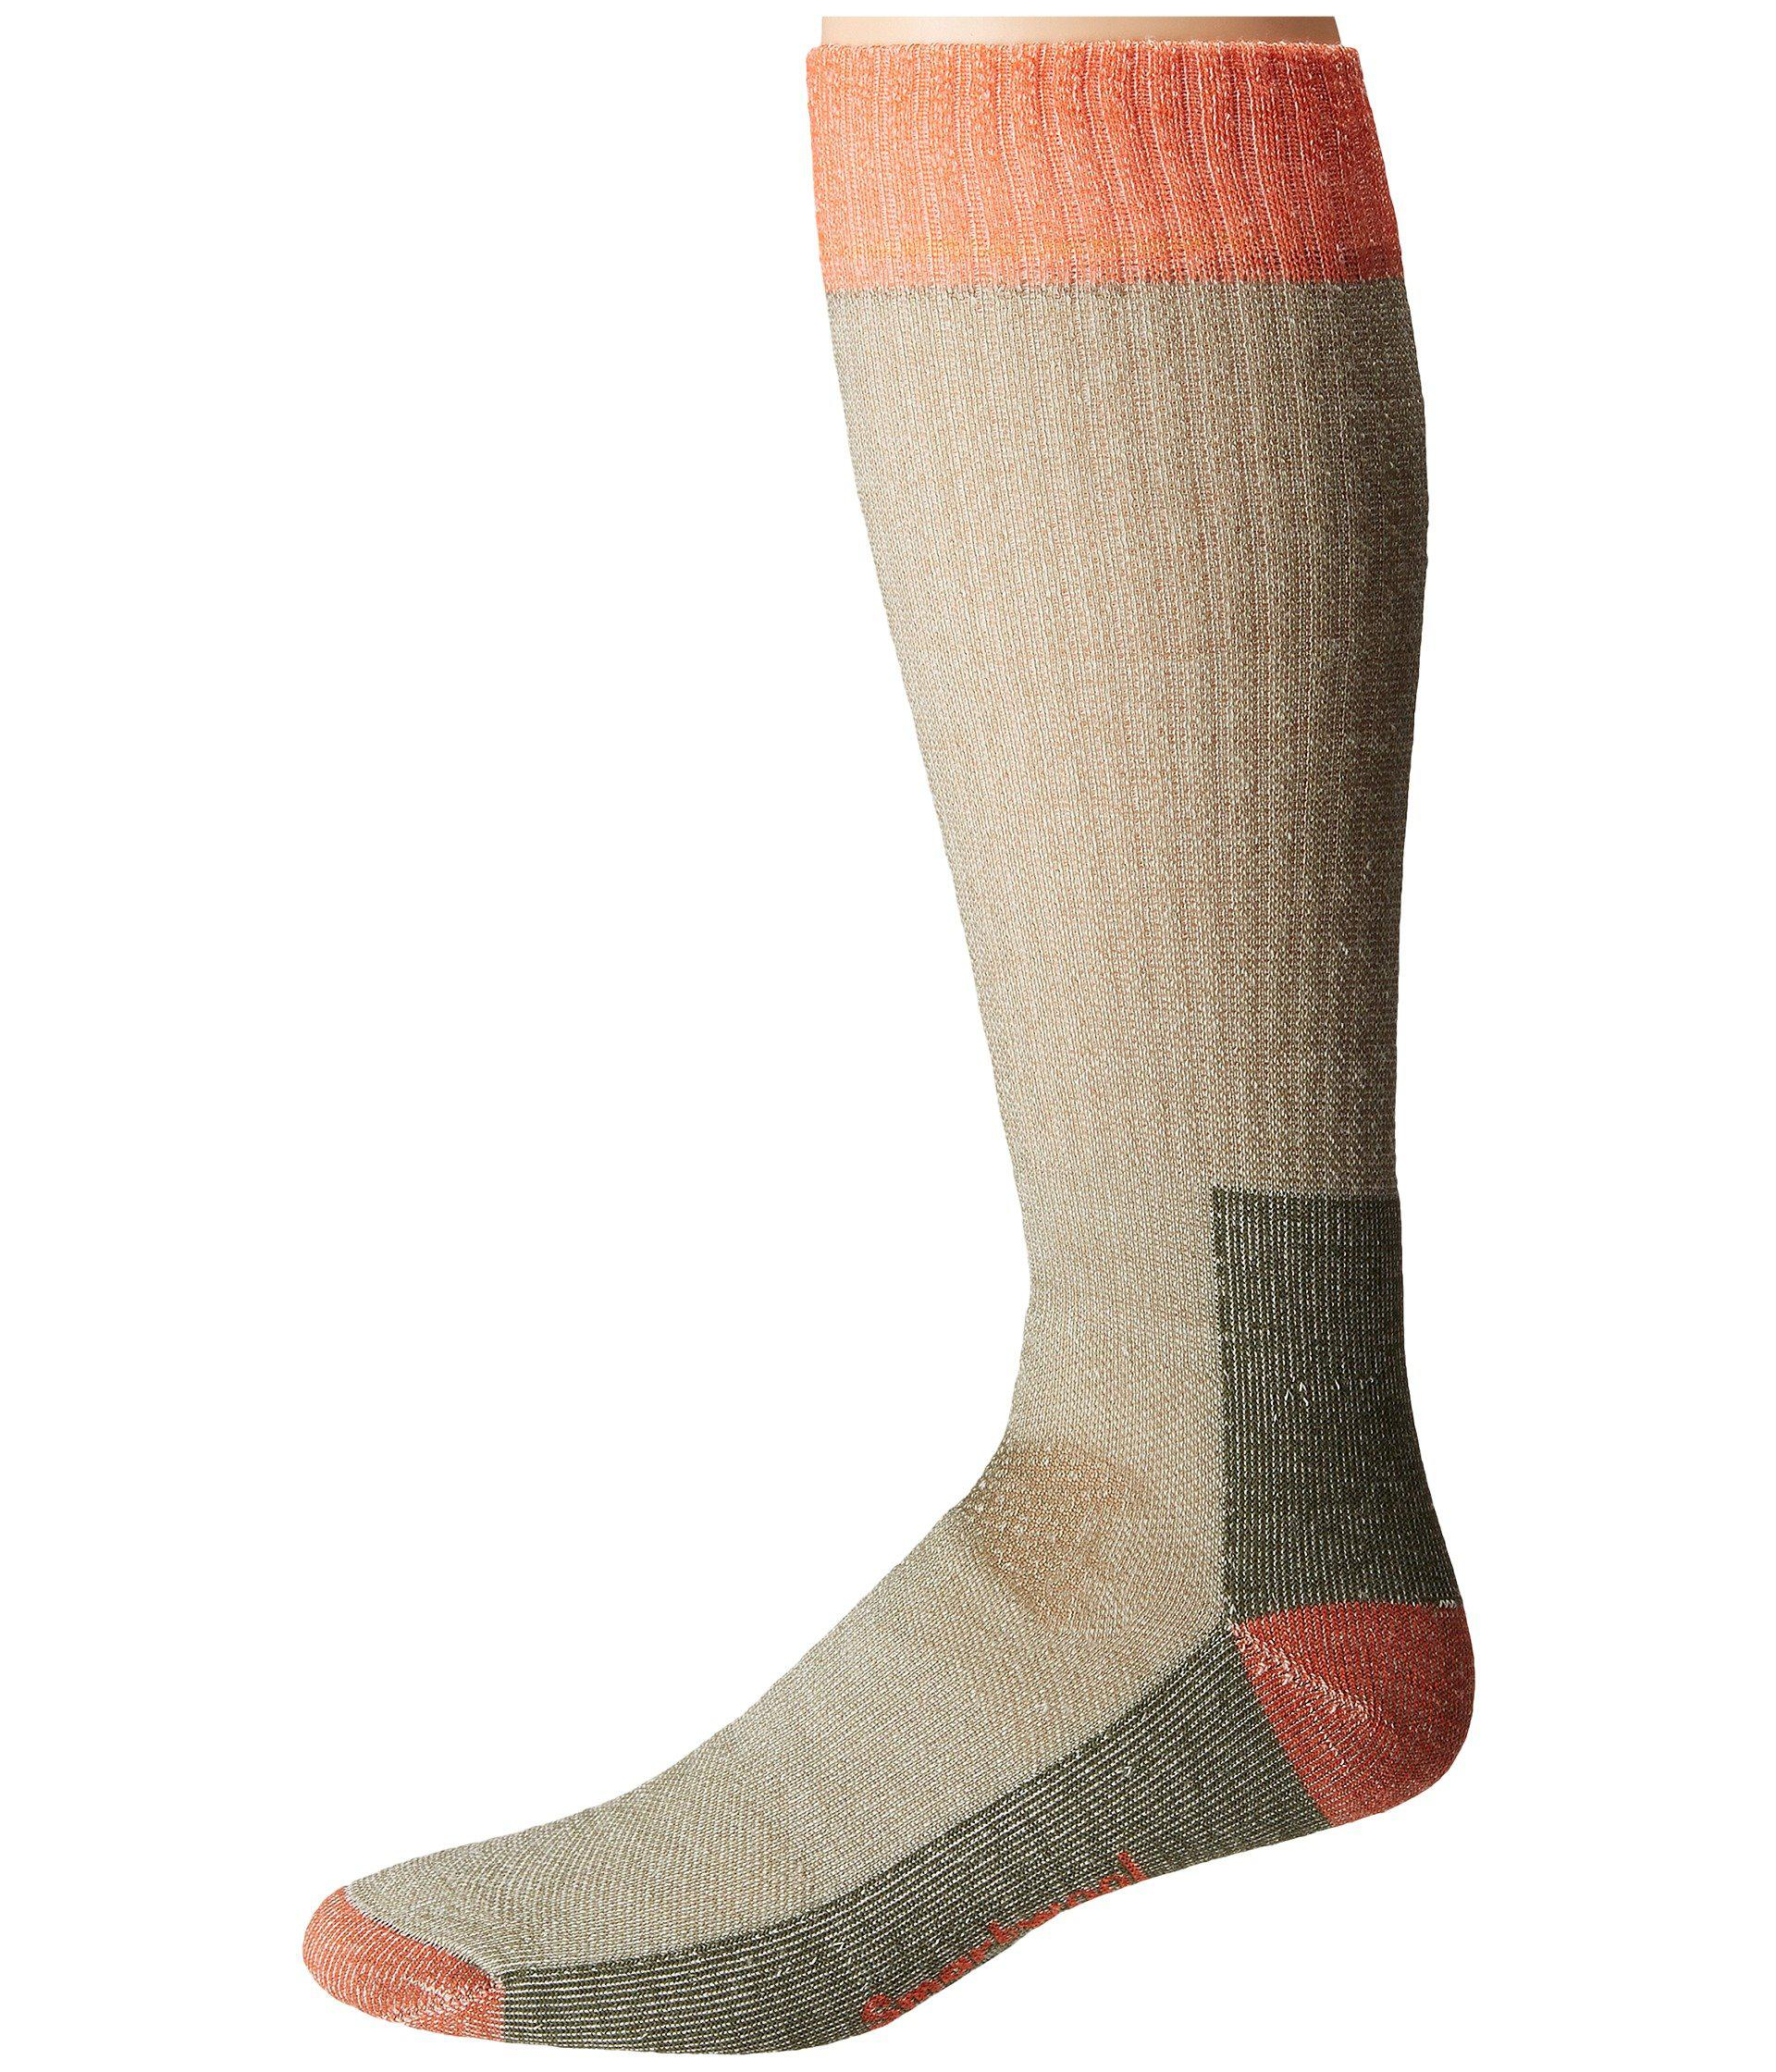 SMARTWOOL Hunt Medium Crew Socks best hunting socks for cold weather